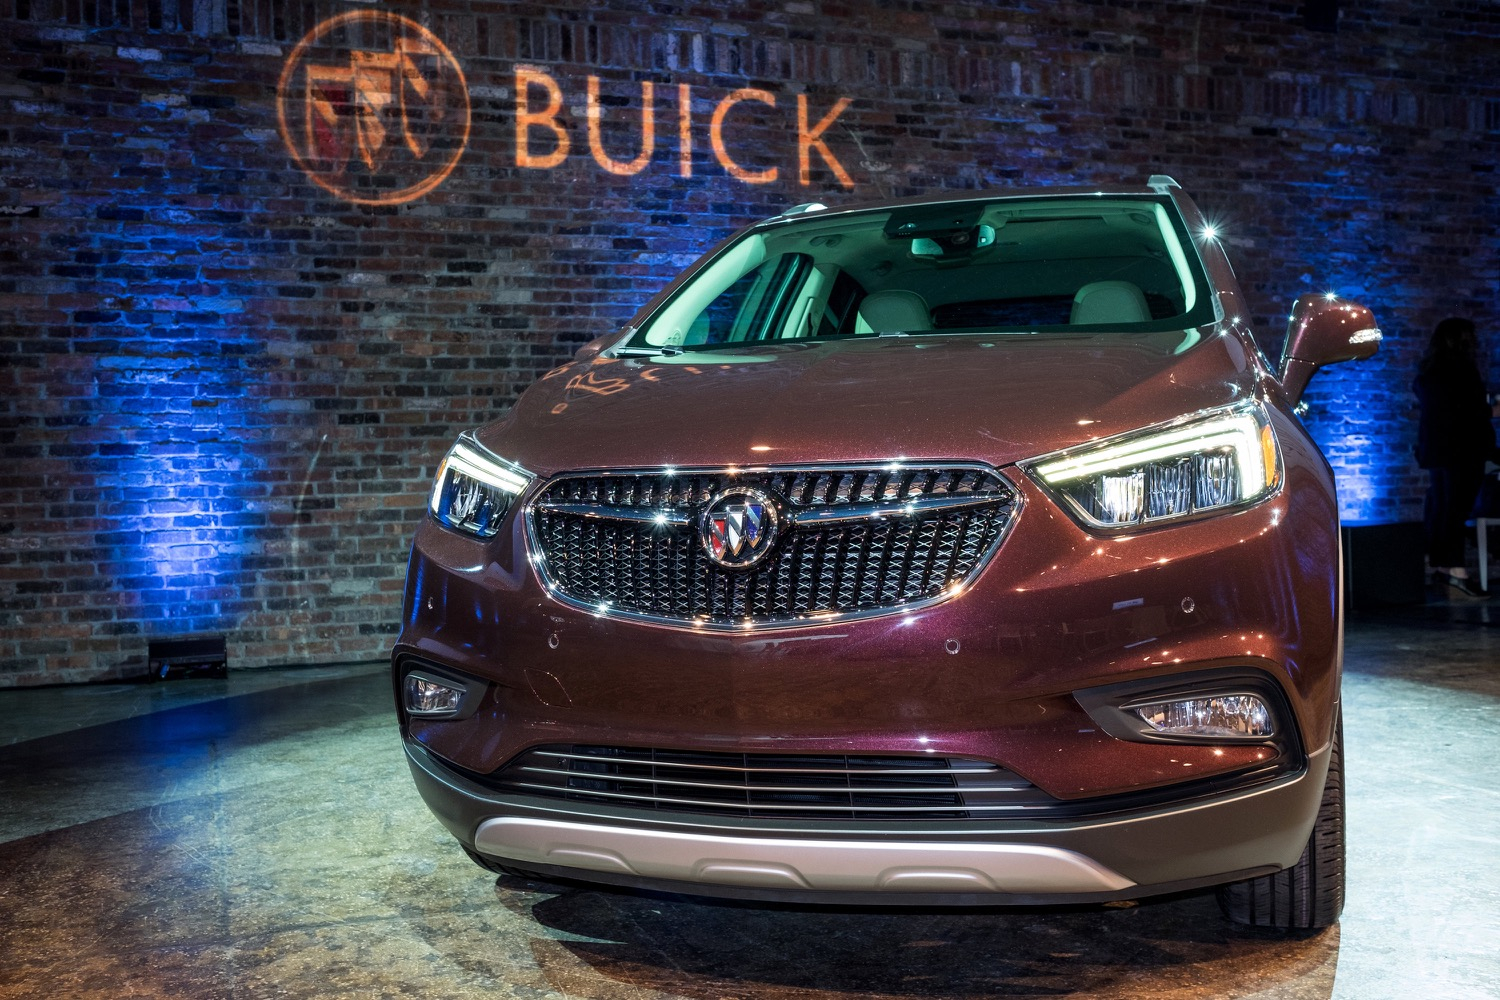 Buick Encore Is A Consumer Reports Best Used Car Under $20K 2022 Buick Encore Used, Updates, Wheels